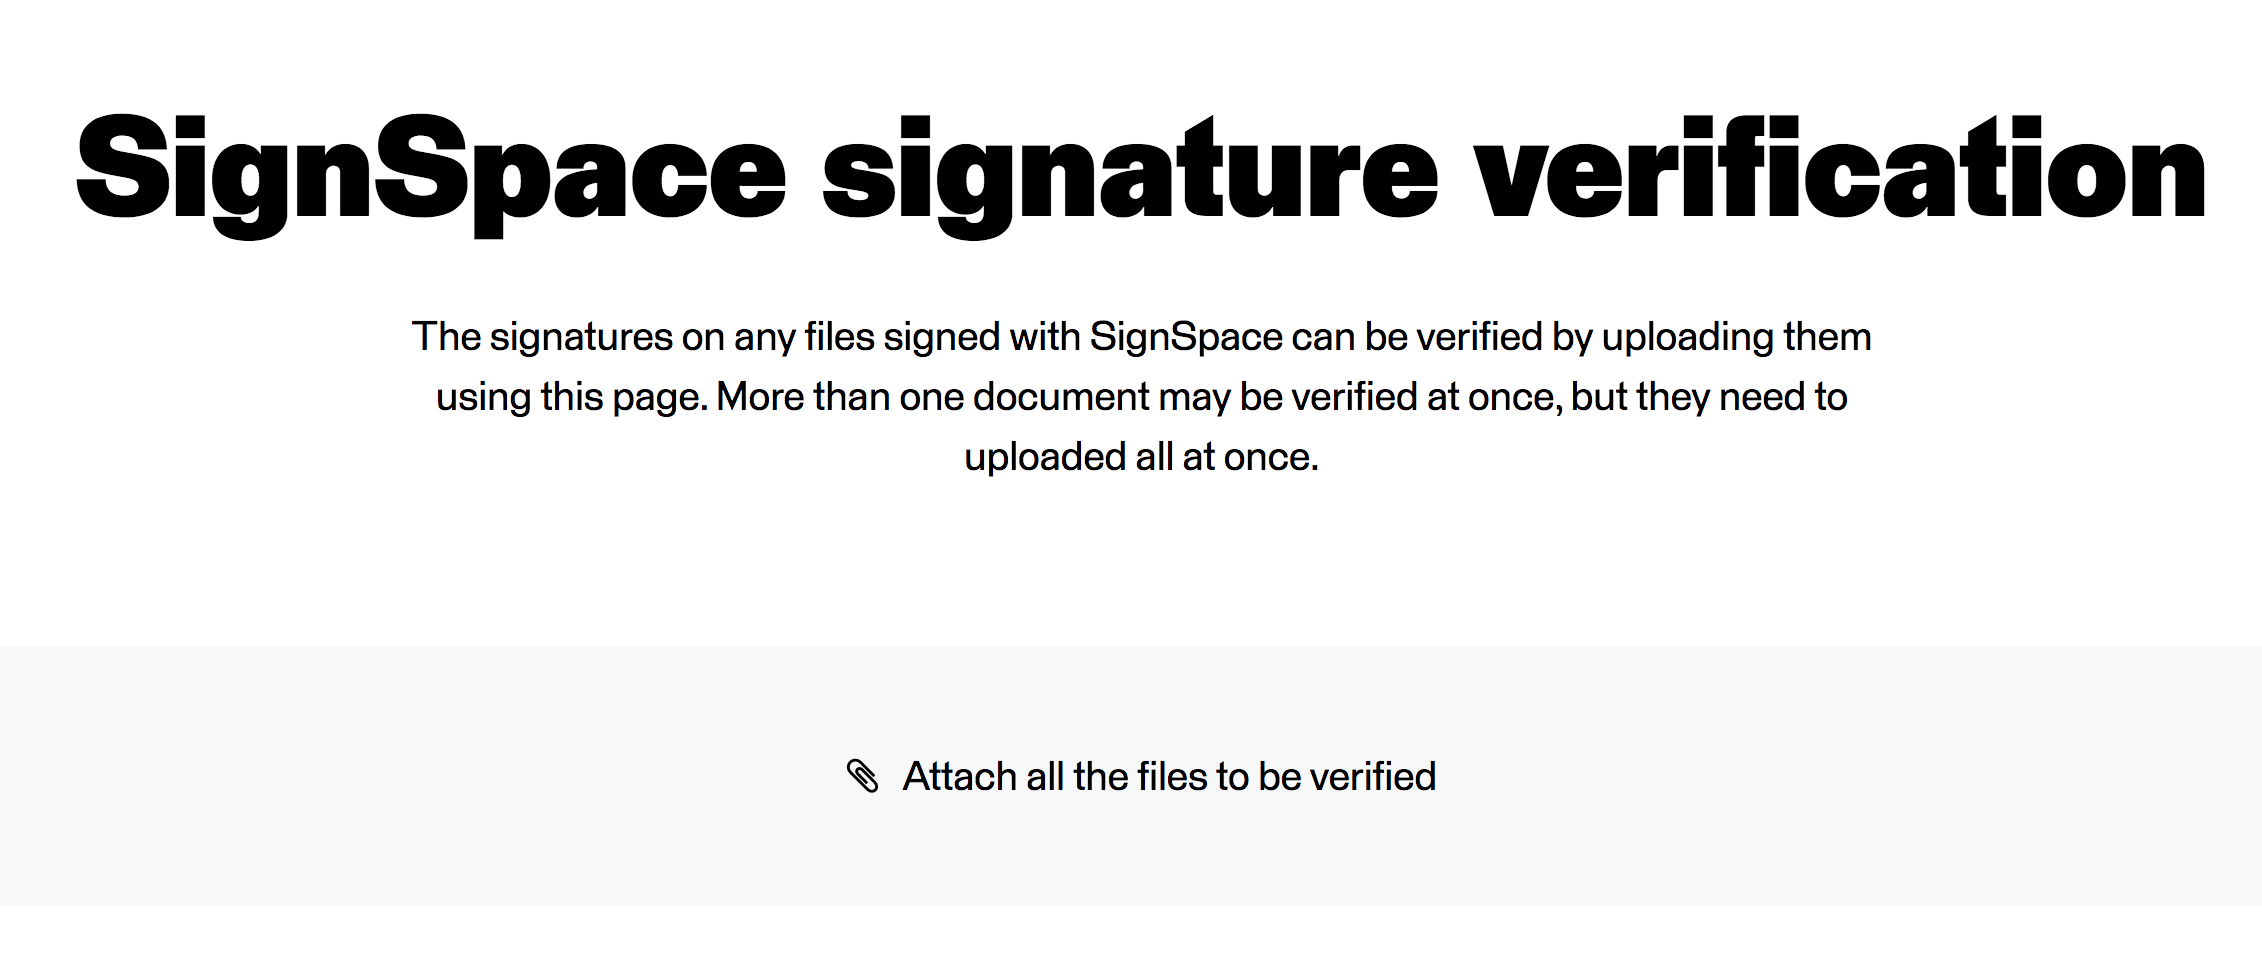 Signature verification file upload page